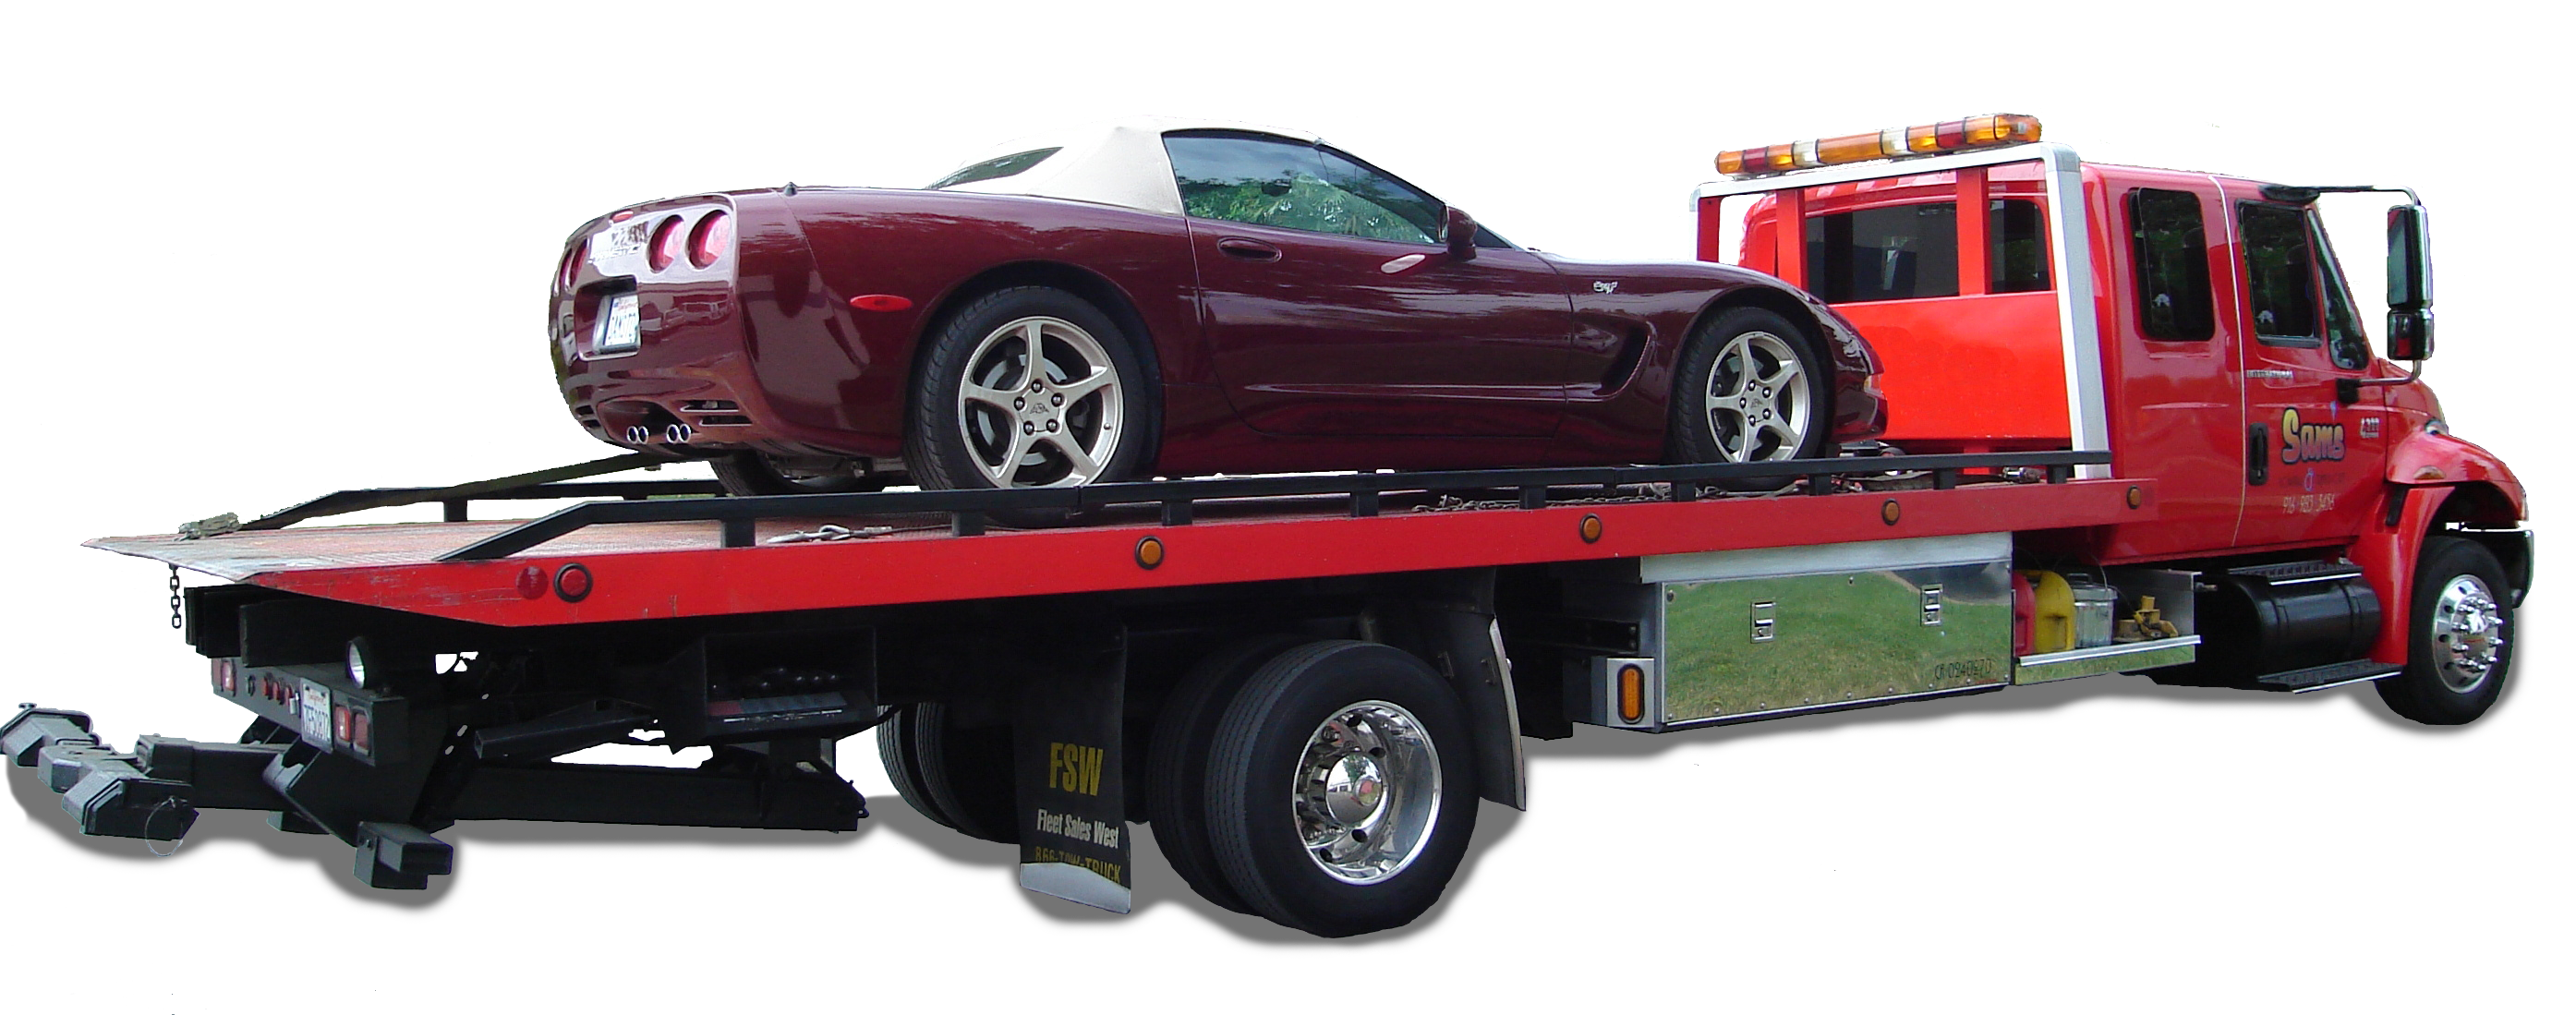 Kia Car Wreckers Brisbane - Cash for Car Removals Brisbane